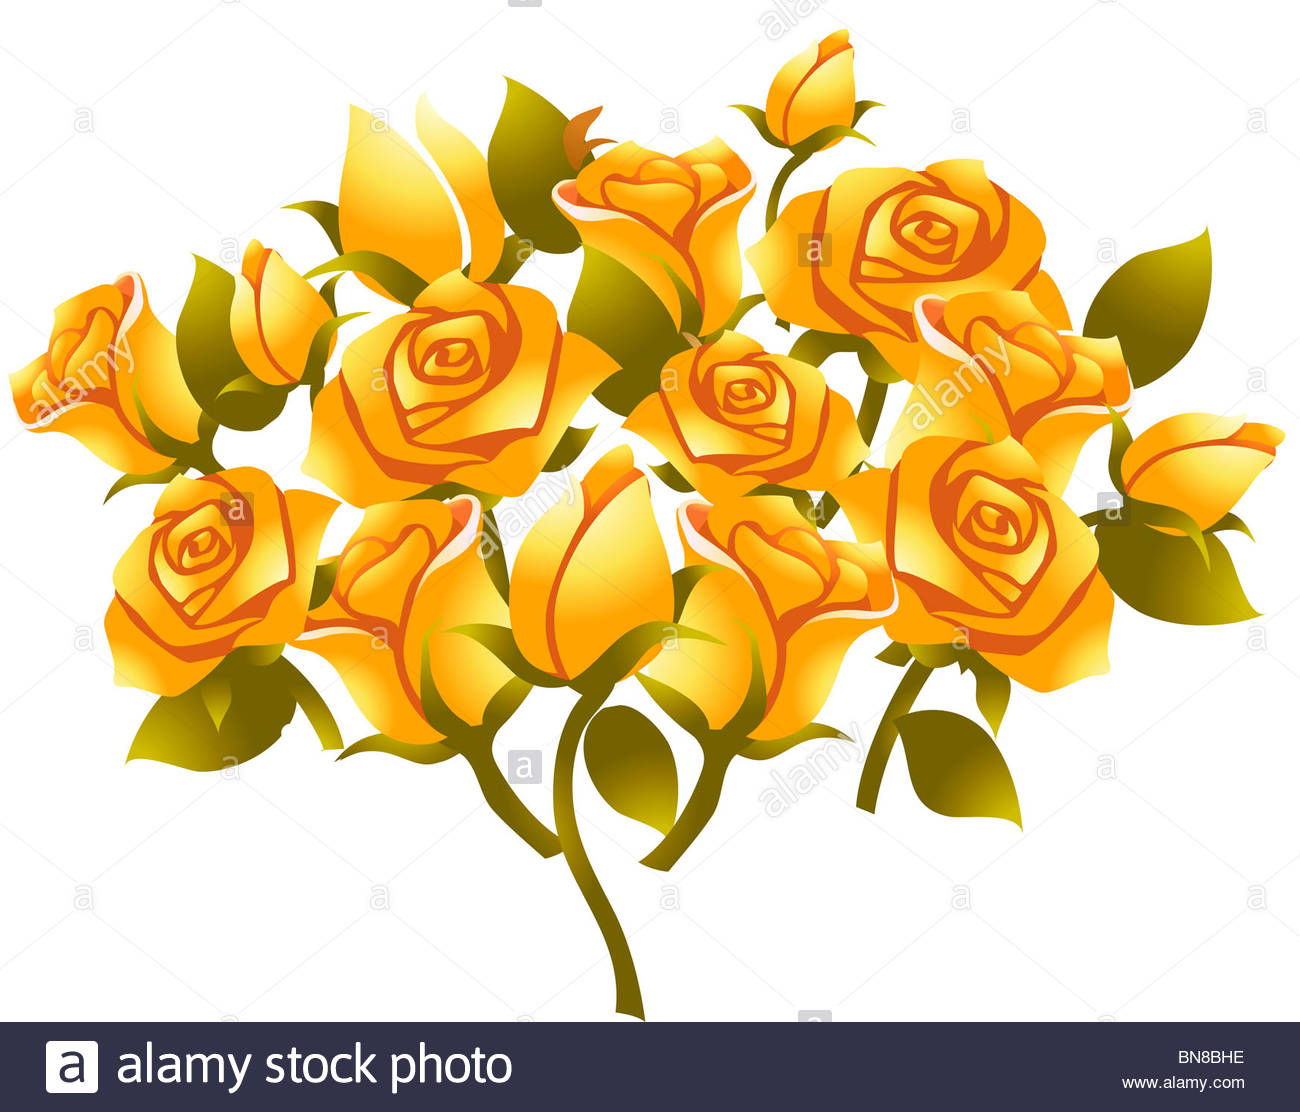 1300x1112 Illustration Drawing Of Yellow Rose Flower In White Background